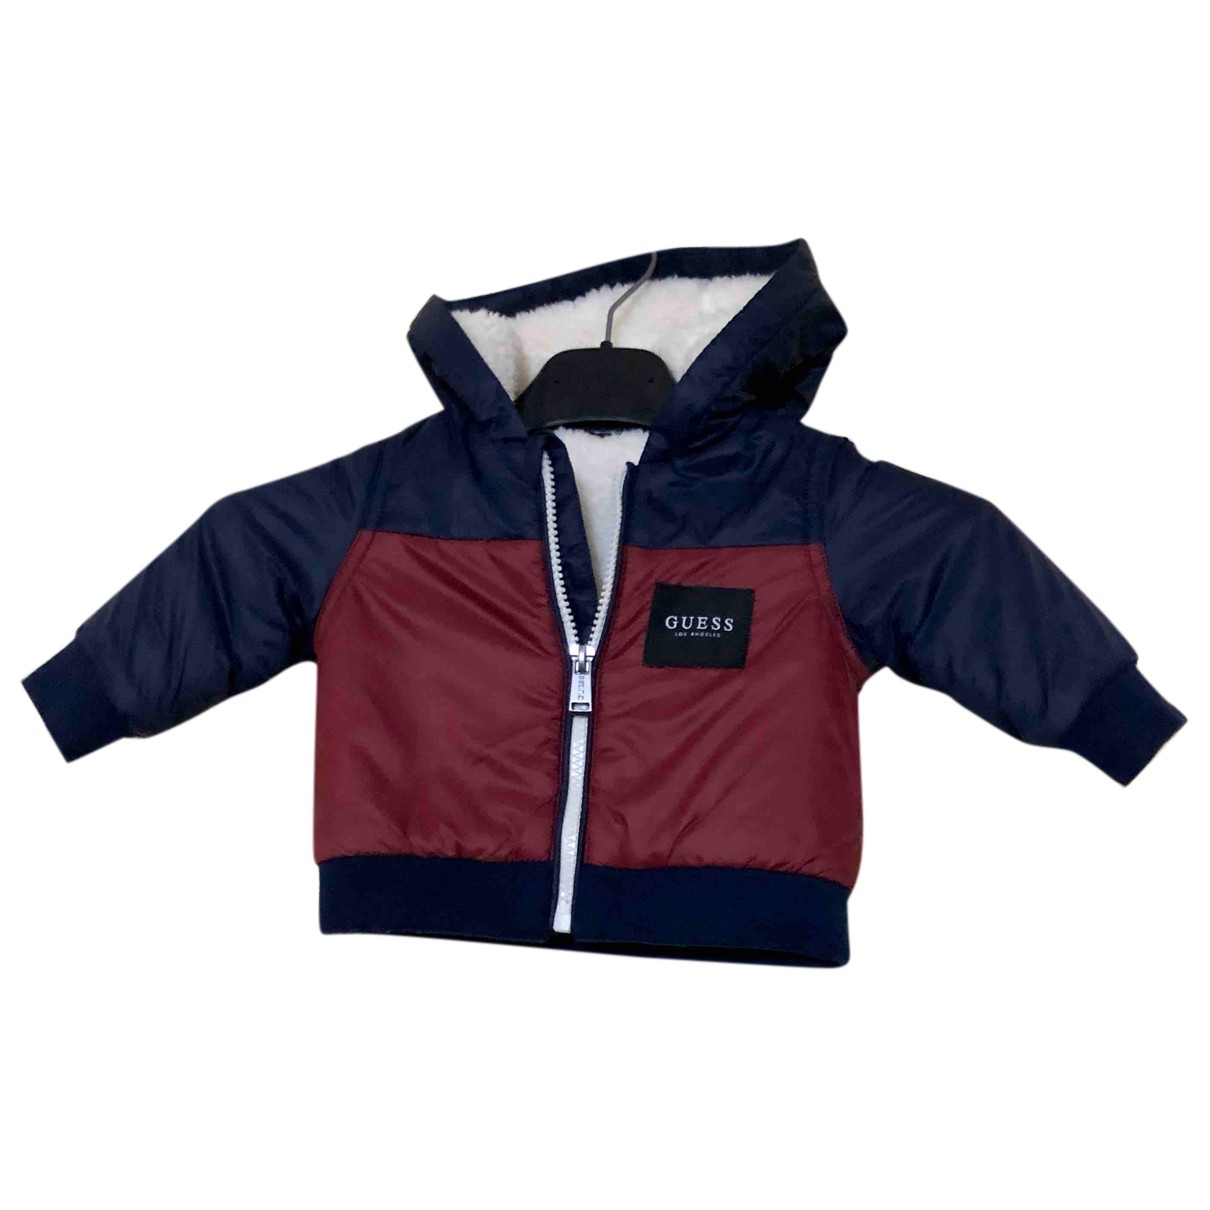 Guess N jacket & coat for Kids 3 months - until 24 inches UK